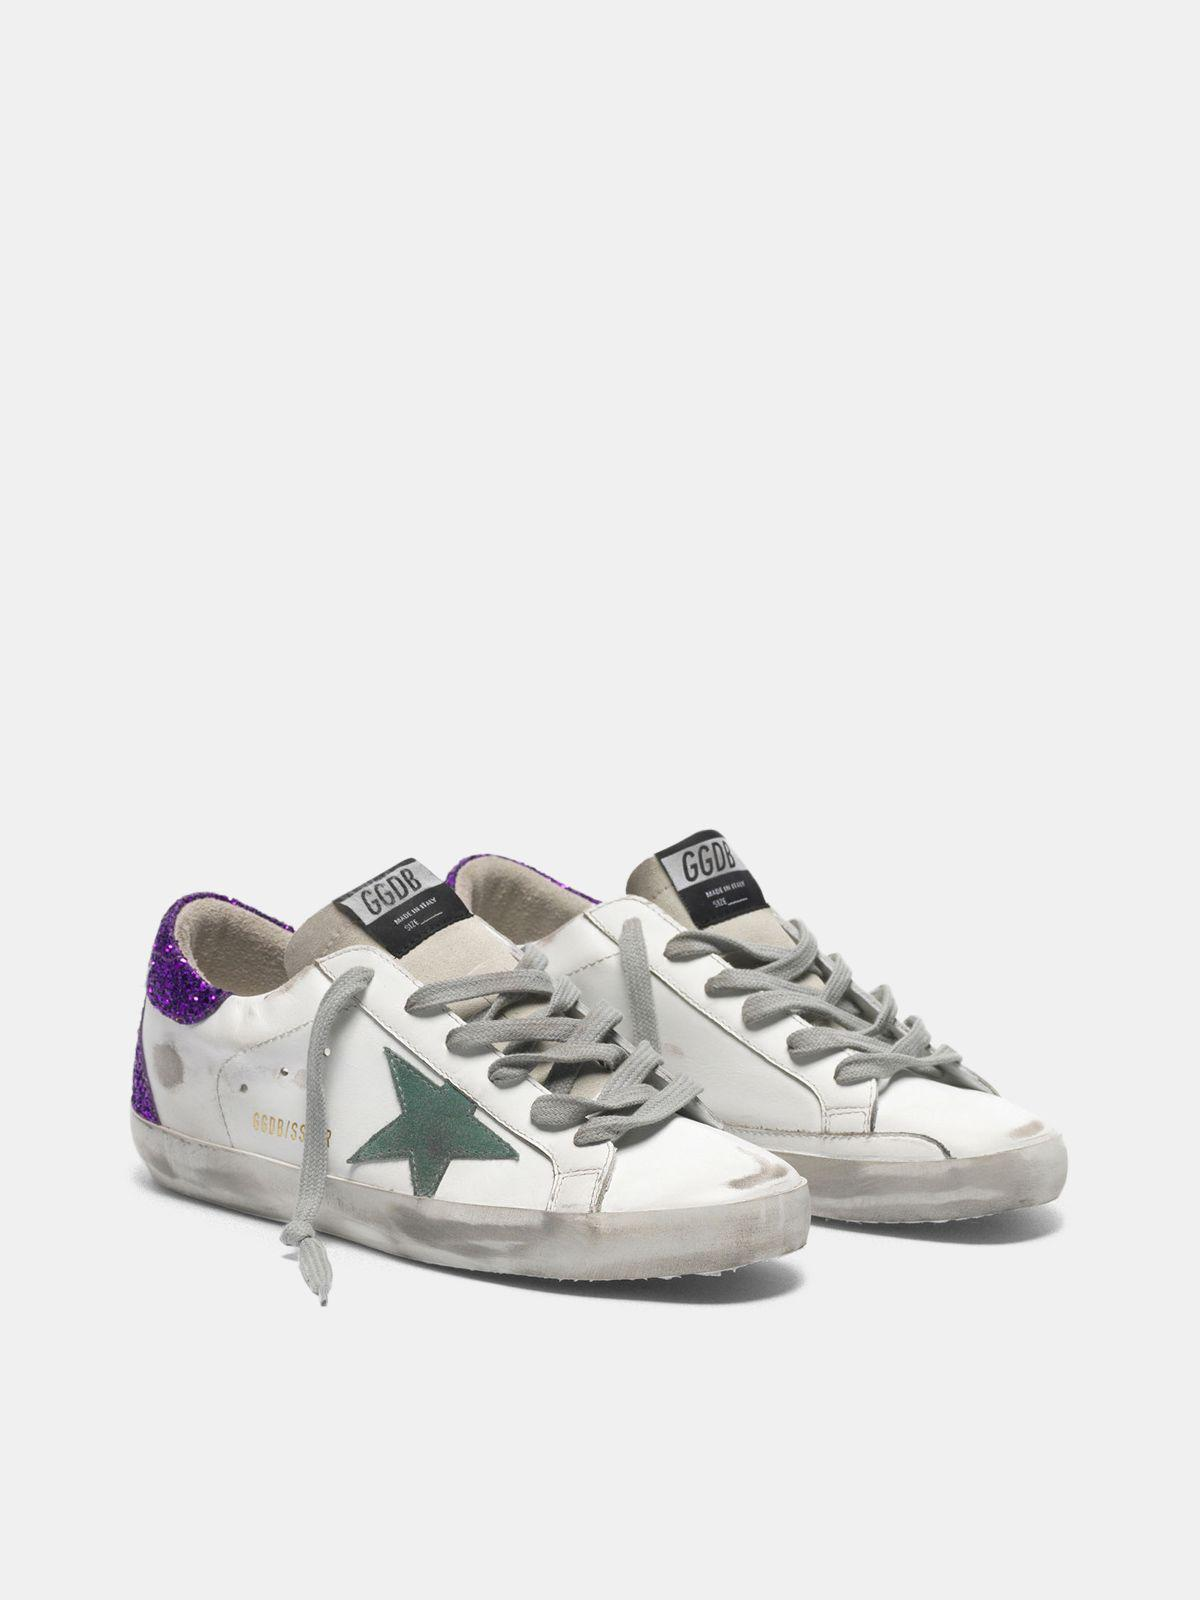 White Super-Star sneakers with glittery purple rear 2